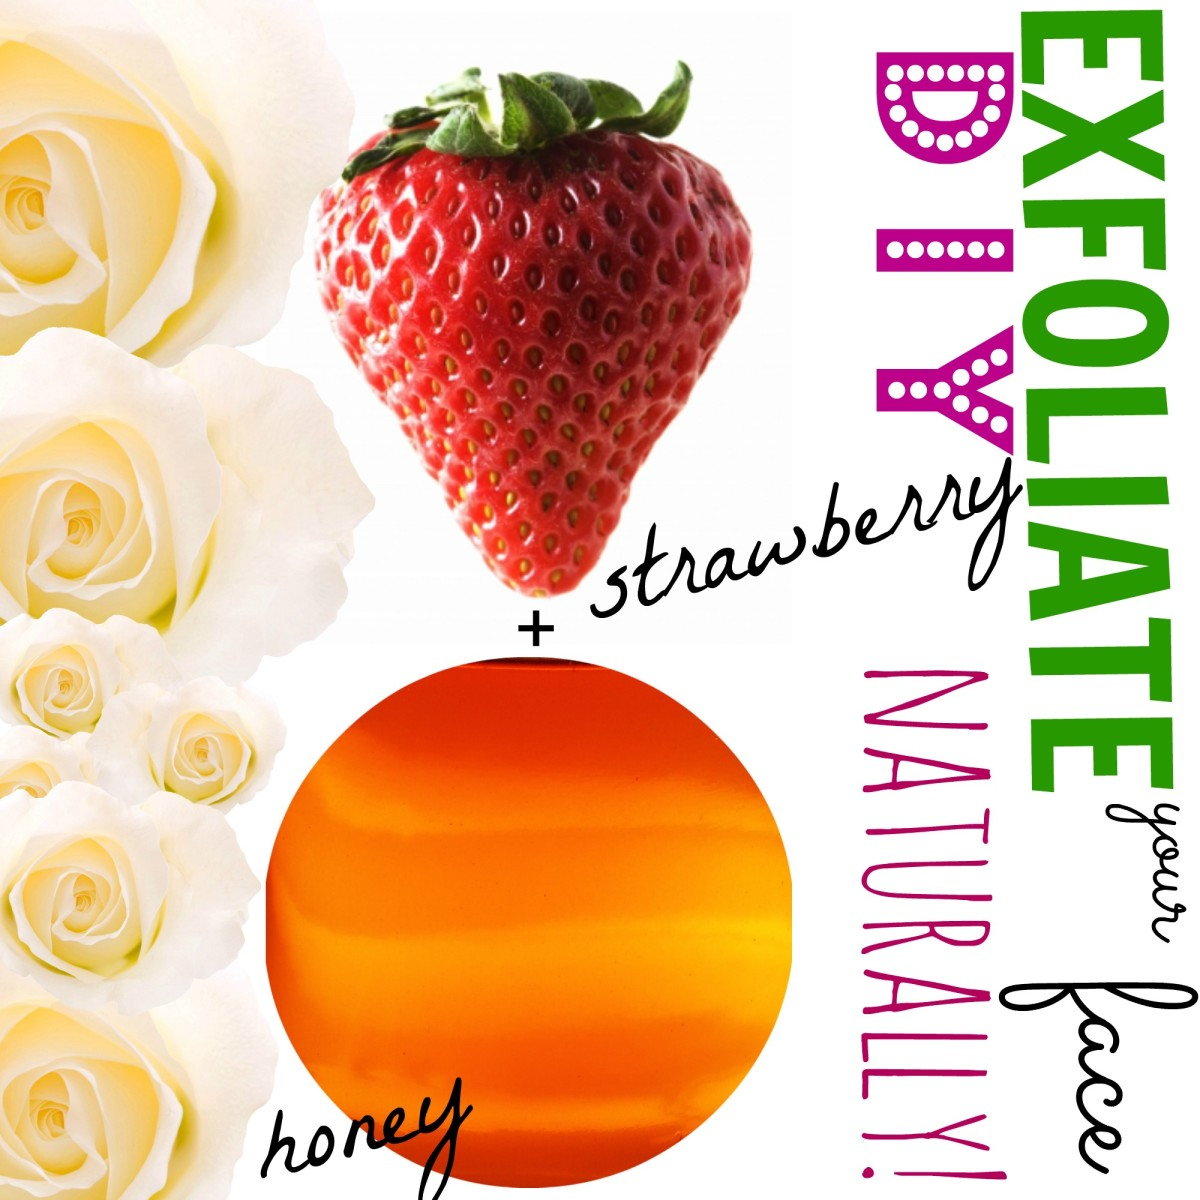 This power-combo face mask has strawberry and honey to exfoliate your pores completely and prevent pimples and acne!